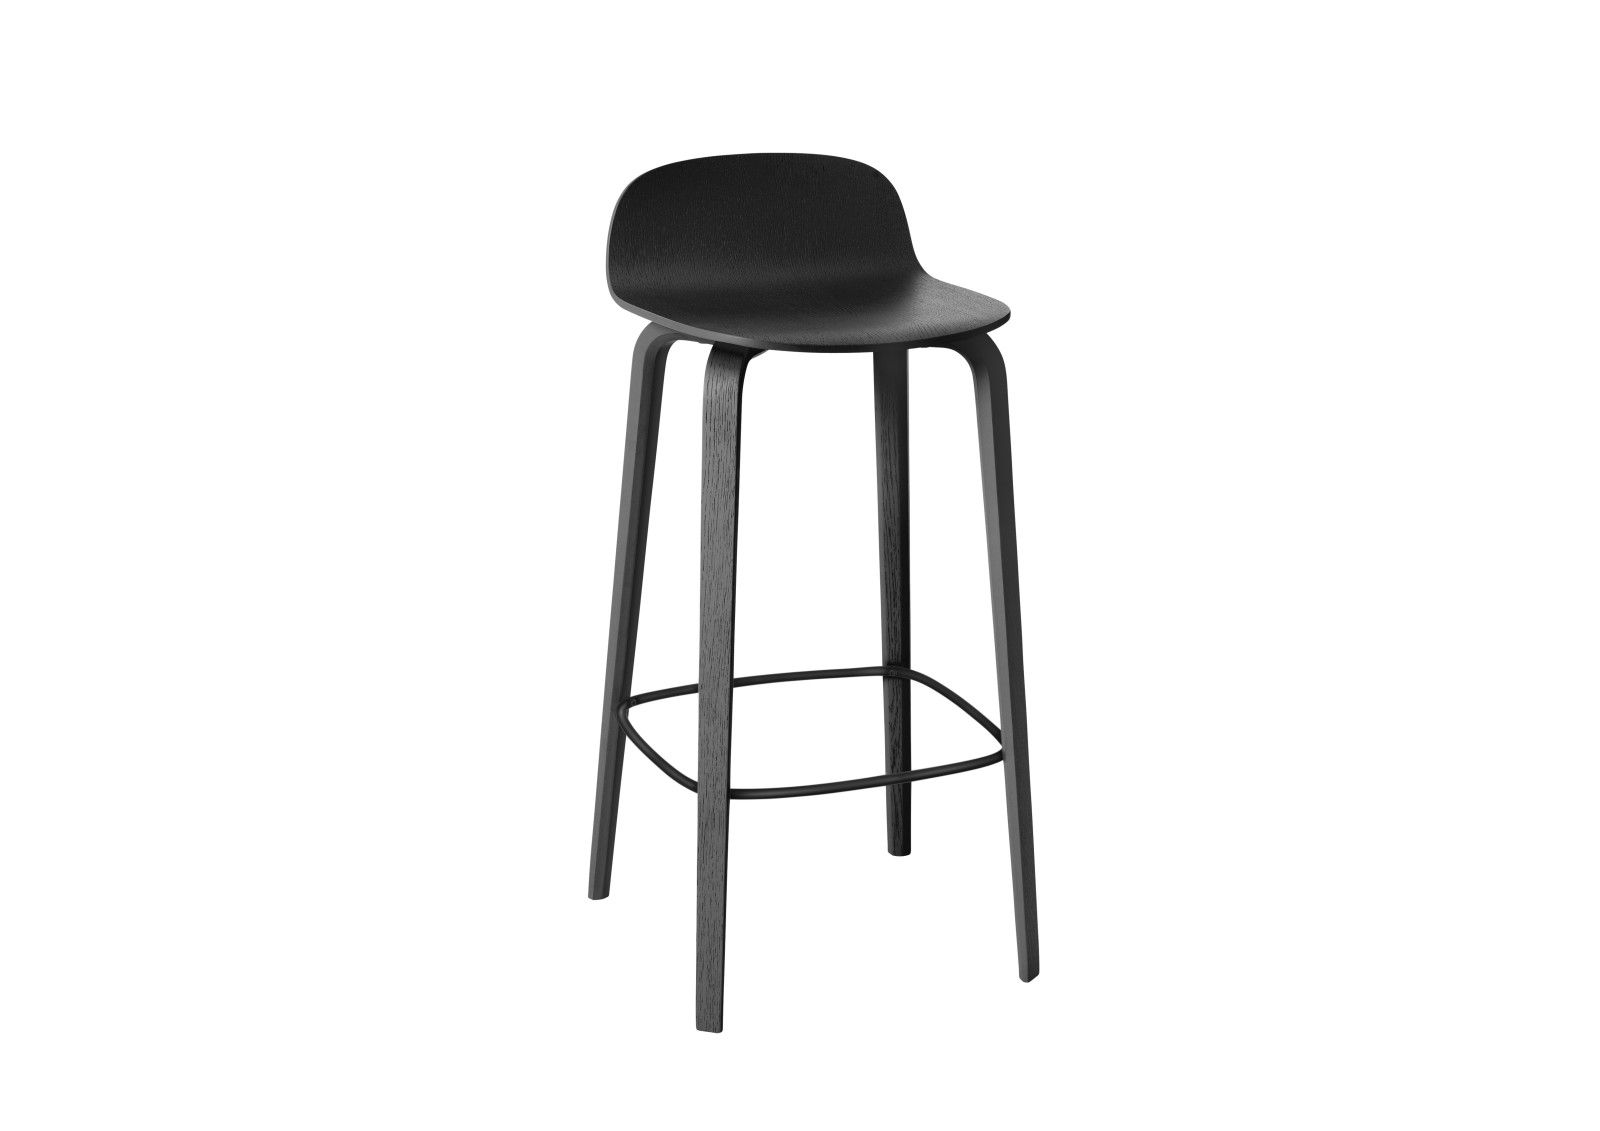 Visu Bar Stool From Muuto Bar Stools Stool Colorful Chairs